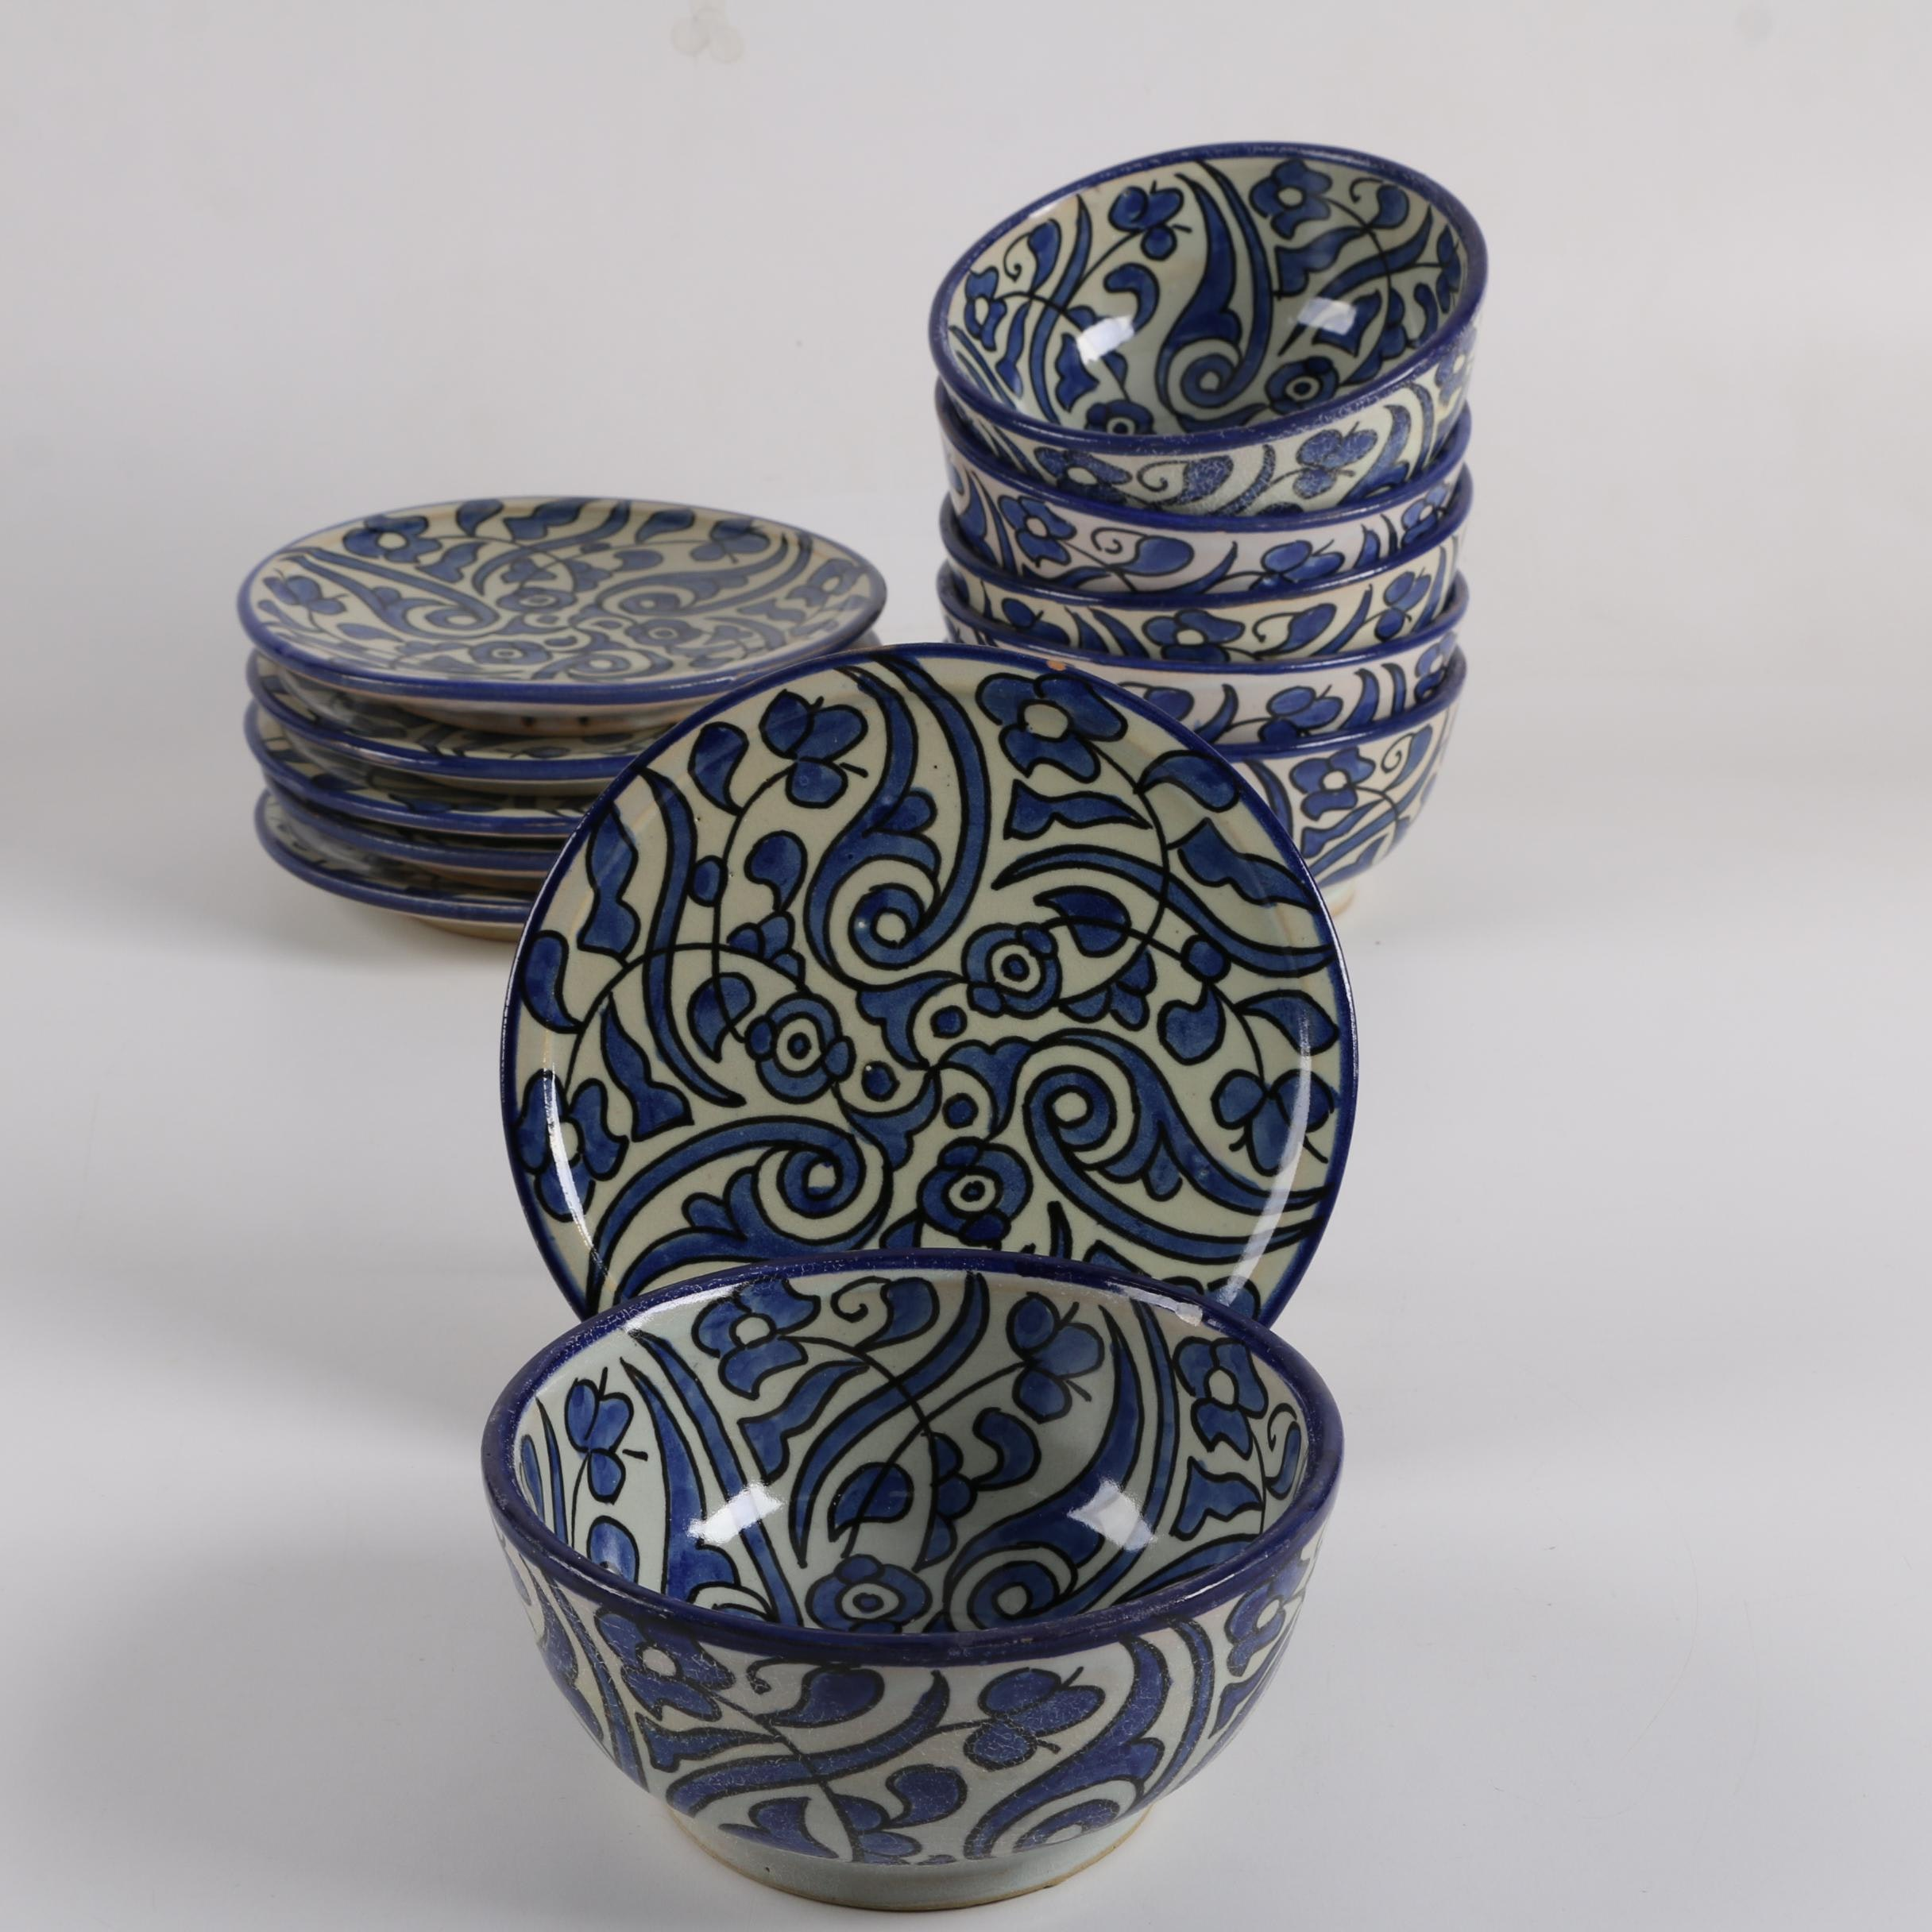 Moroccan Hand-Painted Ceramic Bowls and Bread Plates